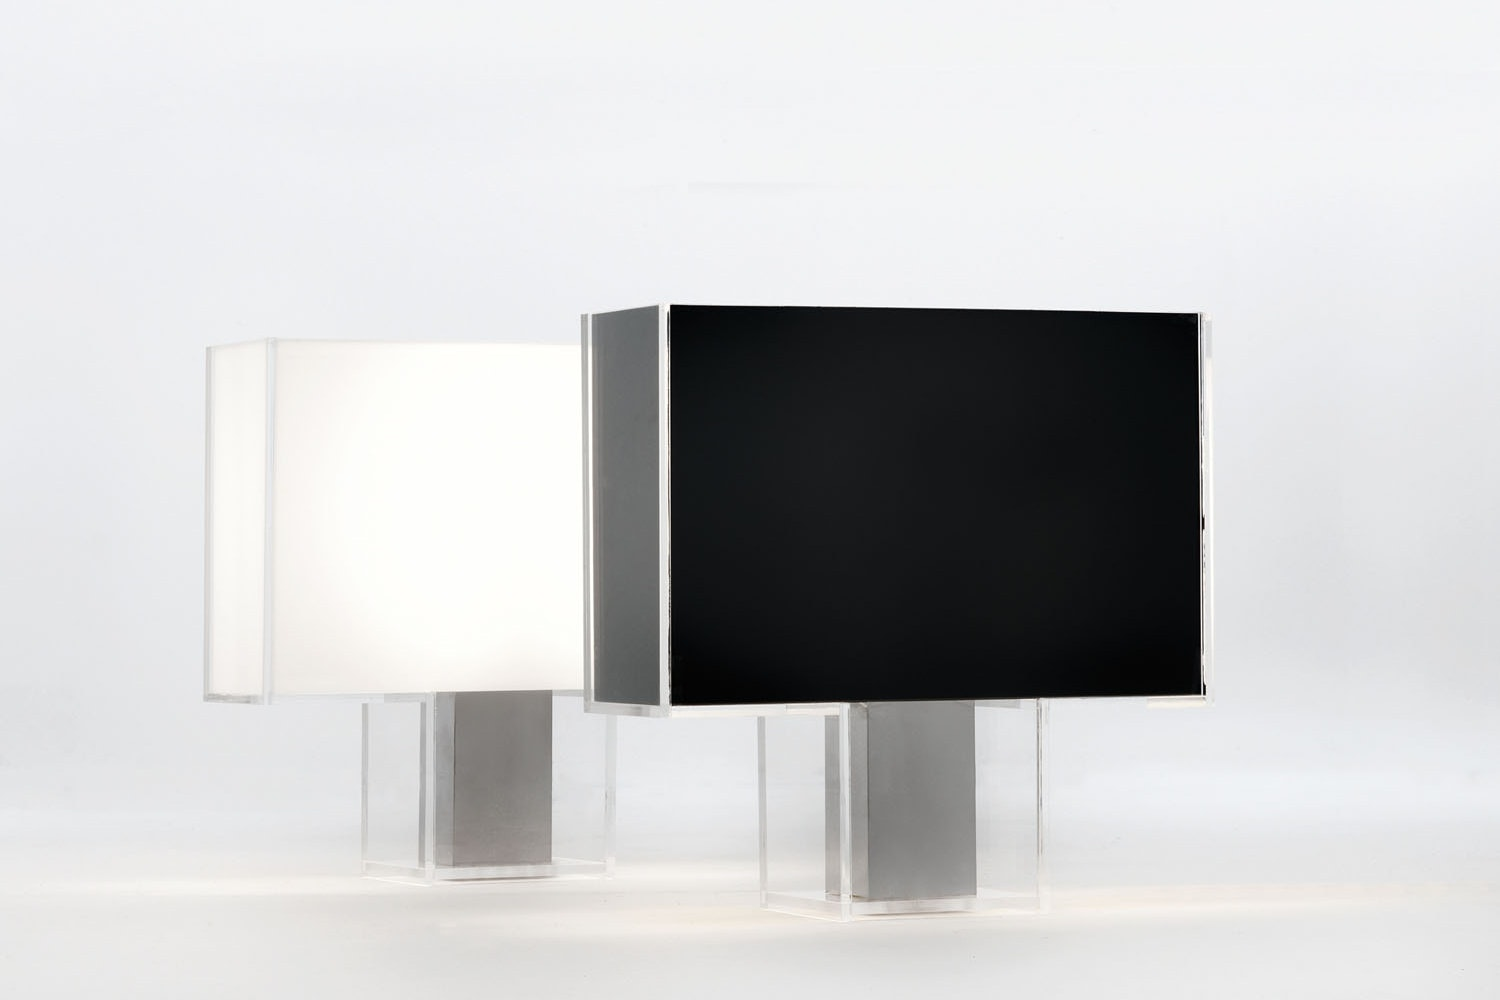 Tati Black Table Lamp by Ferruccio Laviani for Kartell